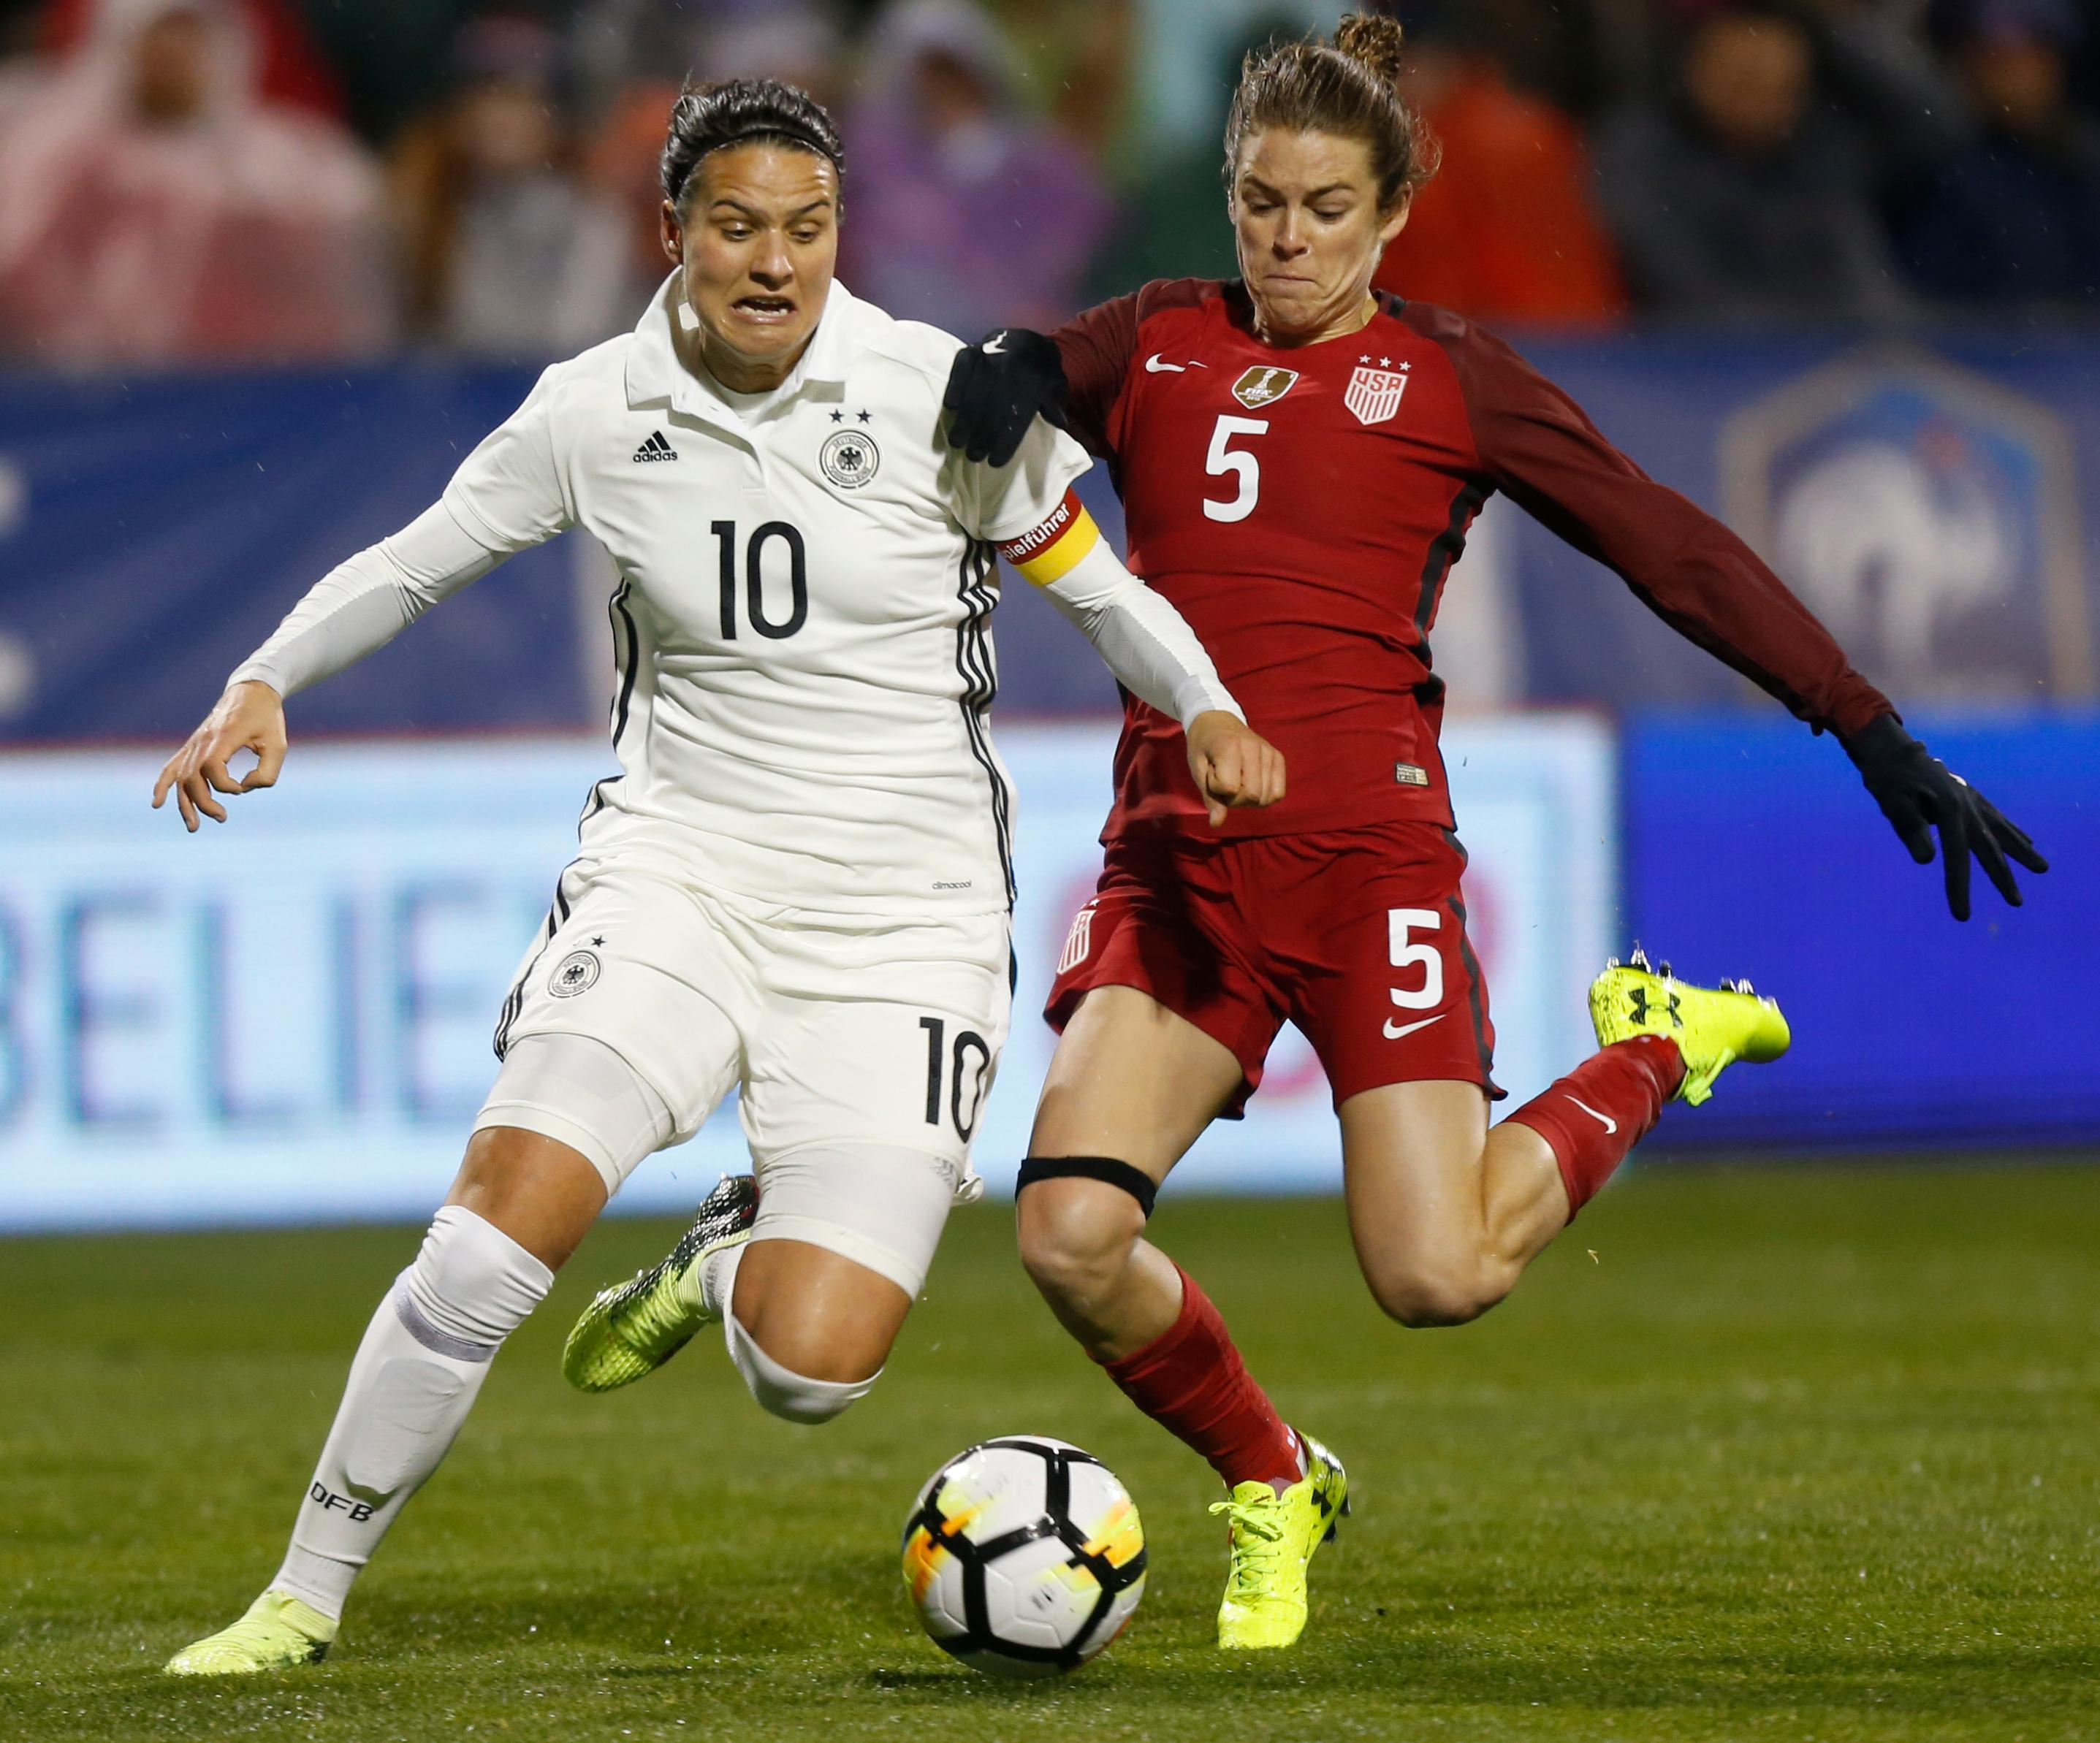 Germany's Dzsenifer Marozsan, left, and United States' Kelley O'Hara vie for the ball during the first half of a SheBelieves Cup women's soccer match Thursday, March 1, 2018, in Columbus, Ohio. (AP Photo/Jay LaPrete)